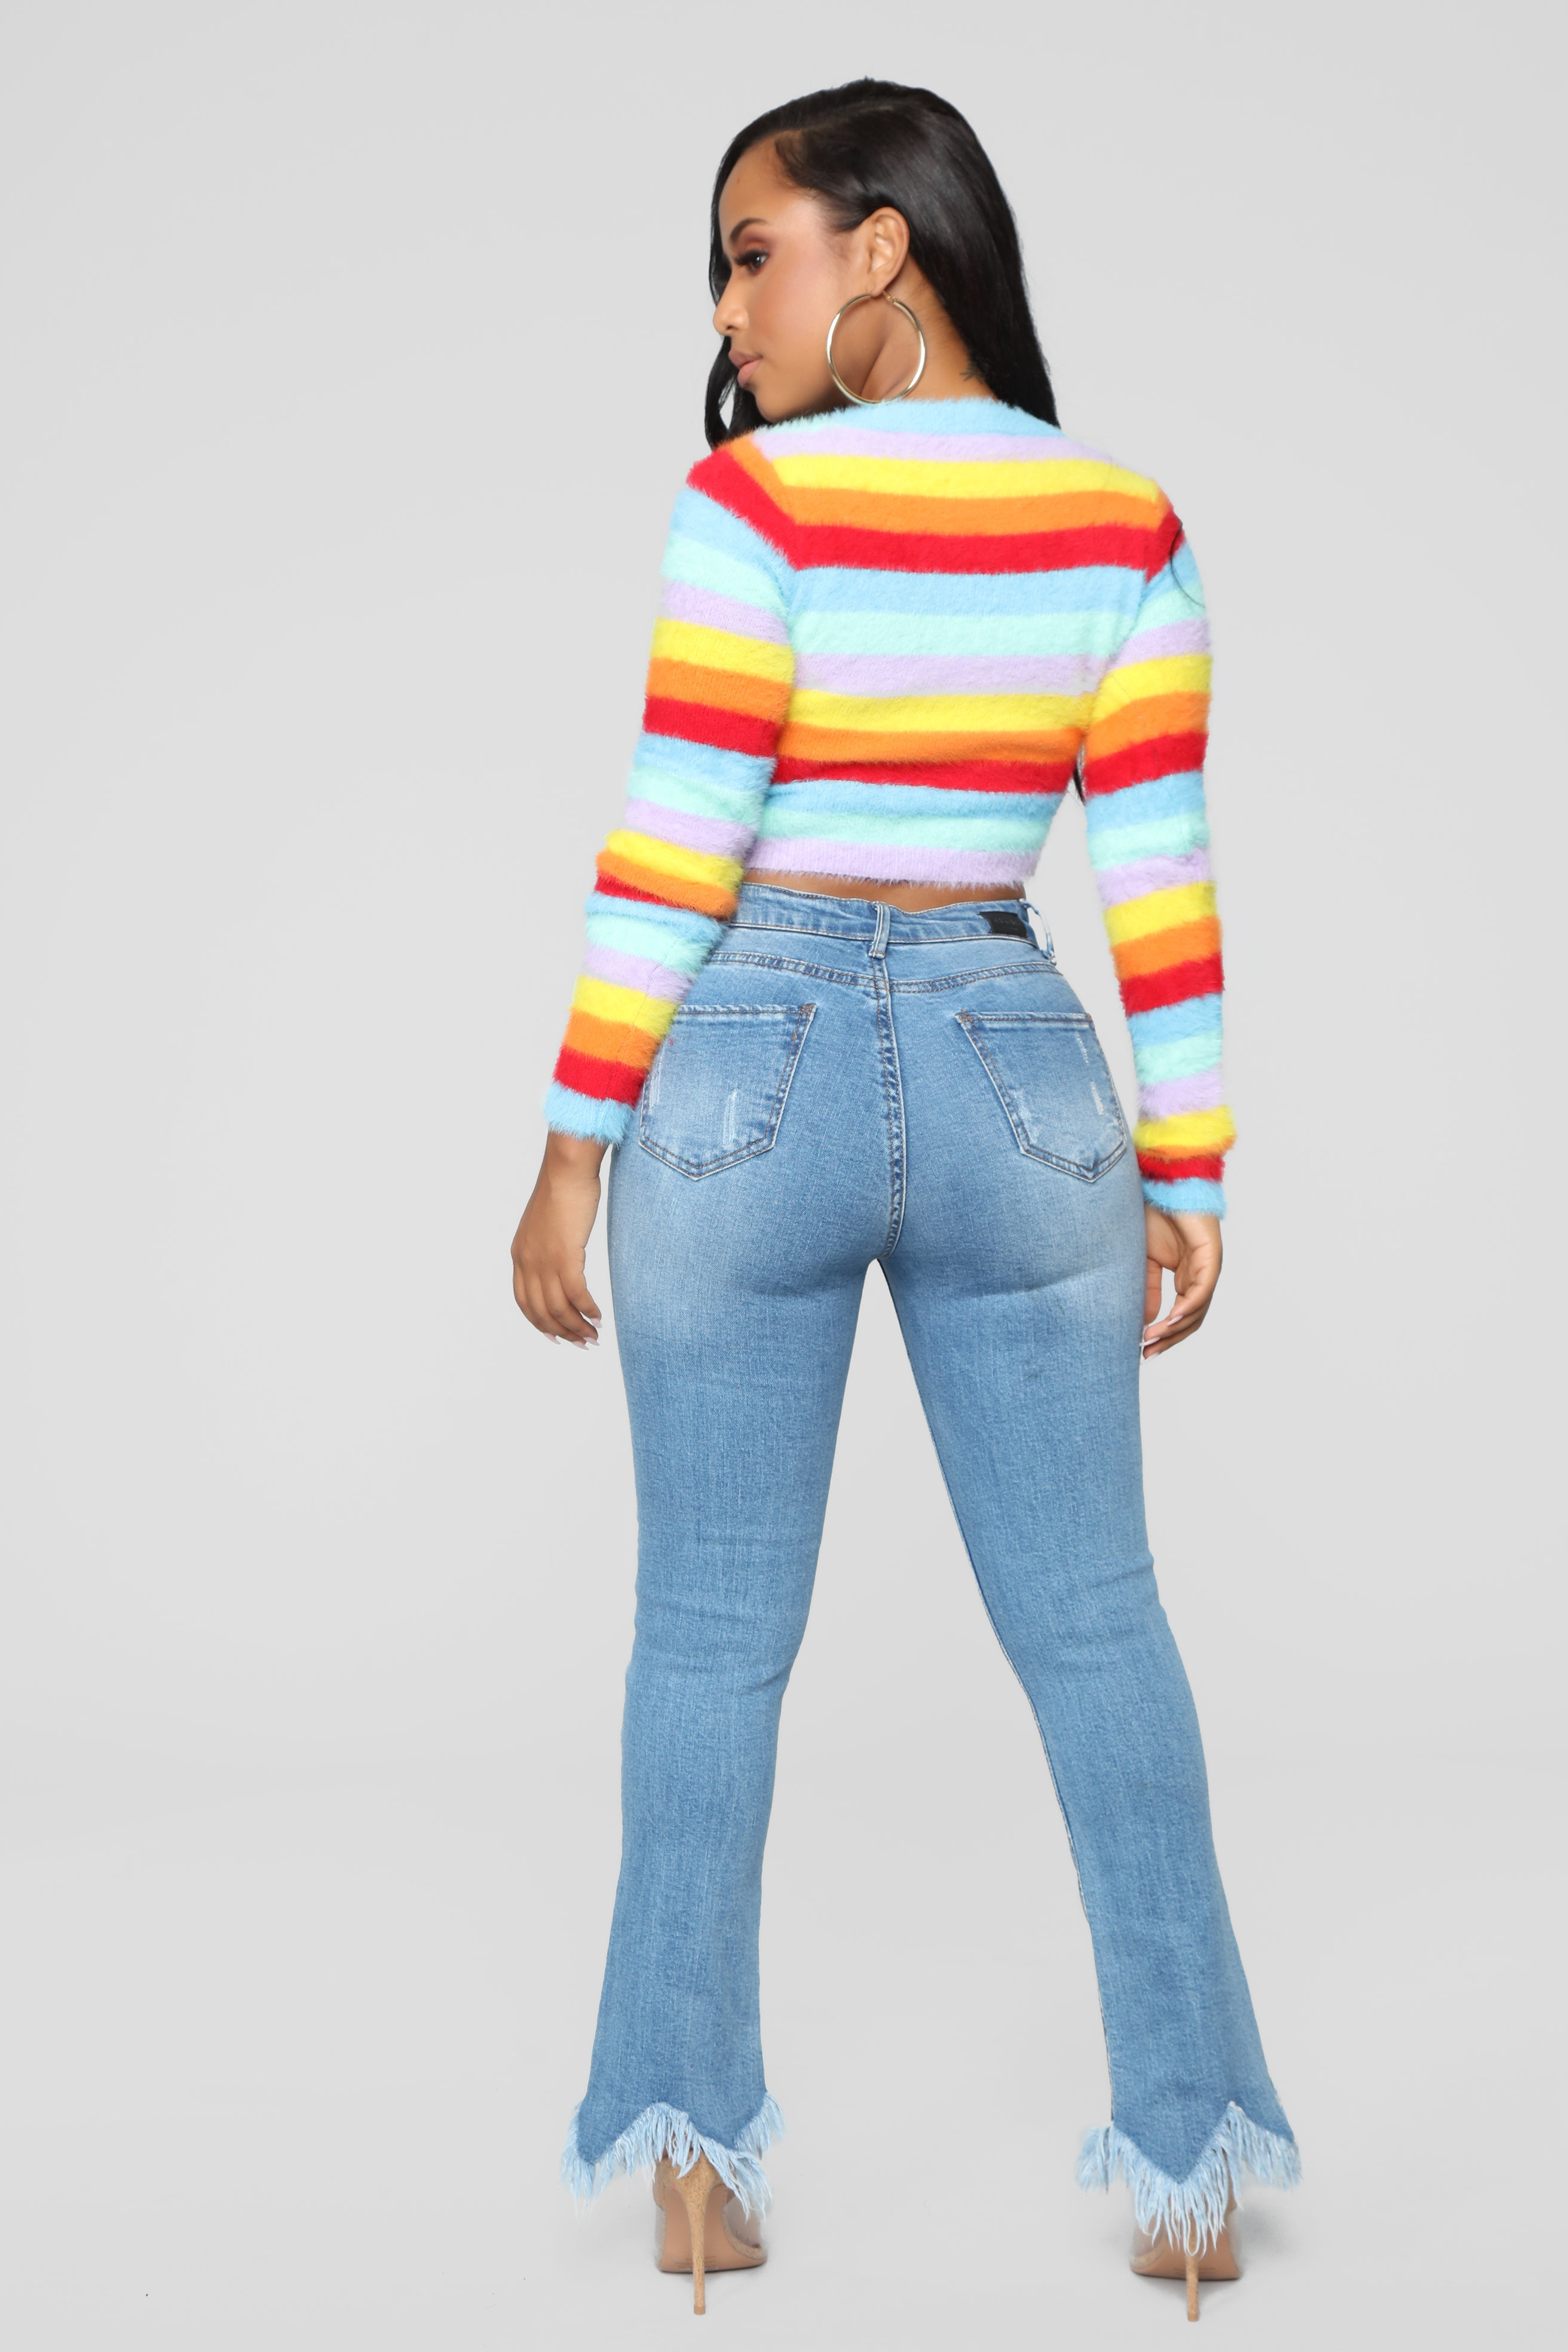 5a8d4a40428f7 Feeling Colorful Fuzzy Sweater - Rainbow